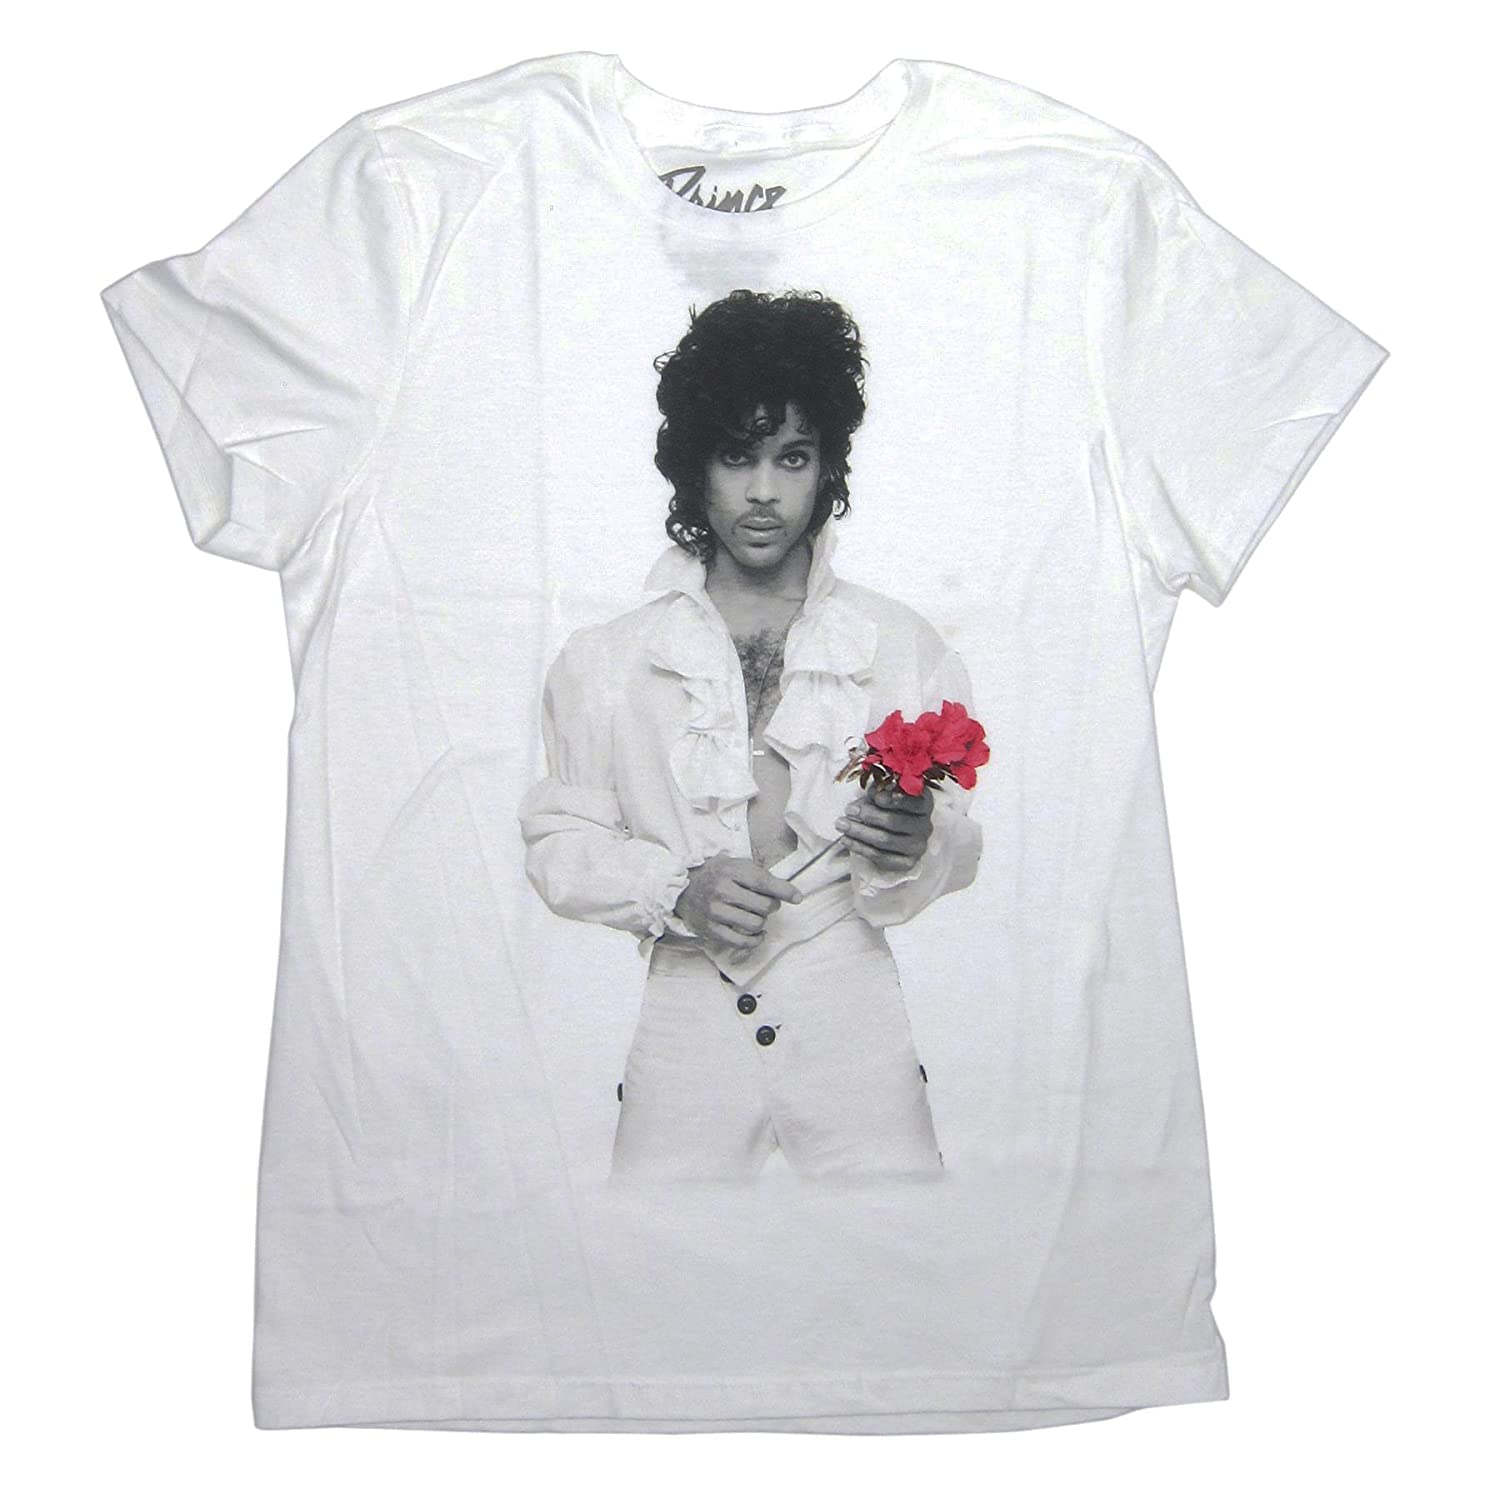 141e14d1 Amazon.com: Bravado Prince Flower T-Shirt (X-Large) White: Clothing